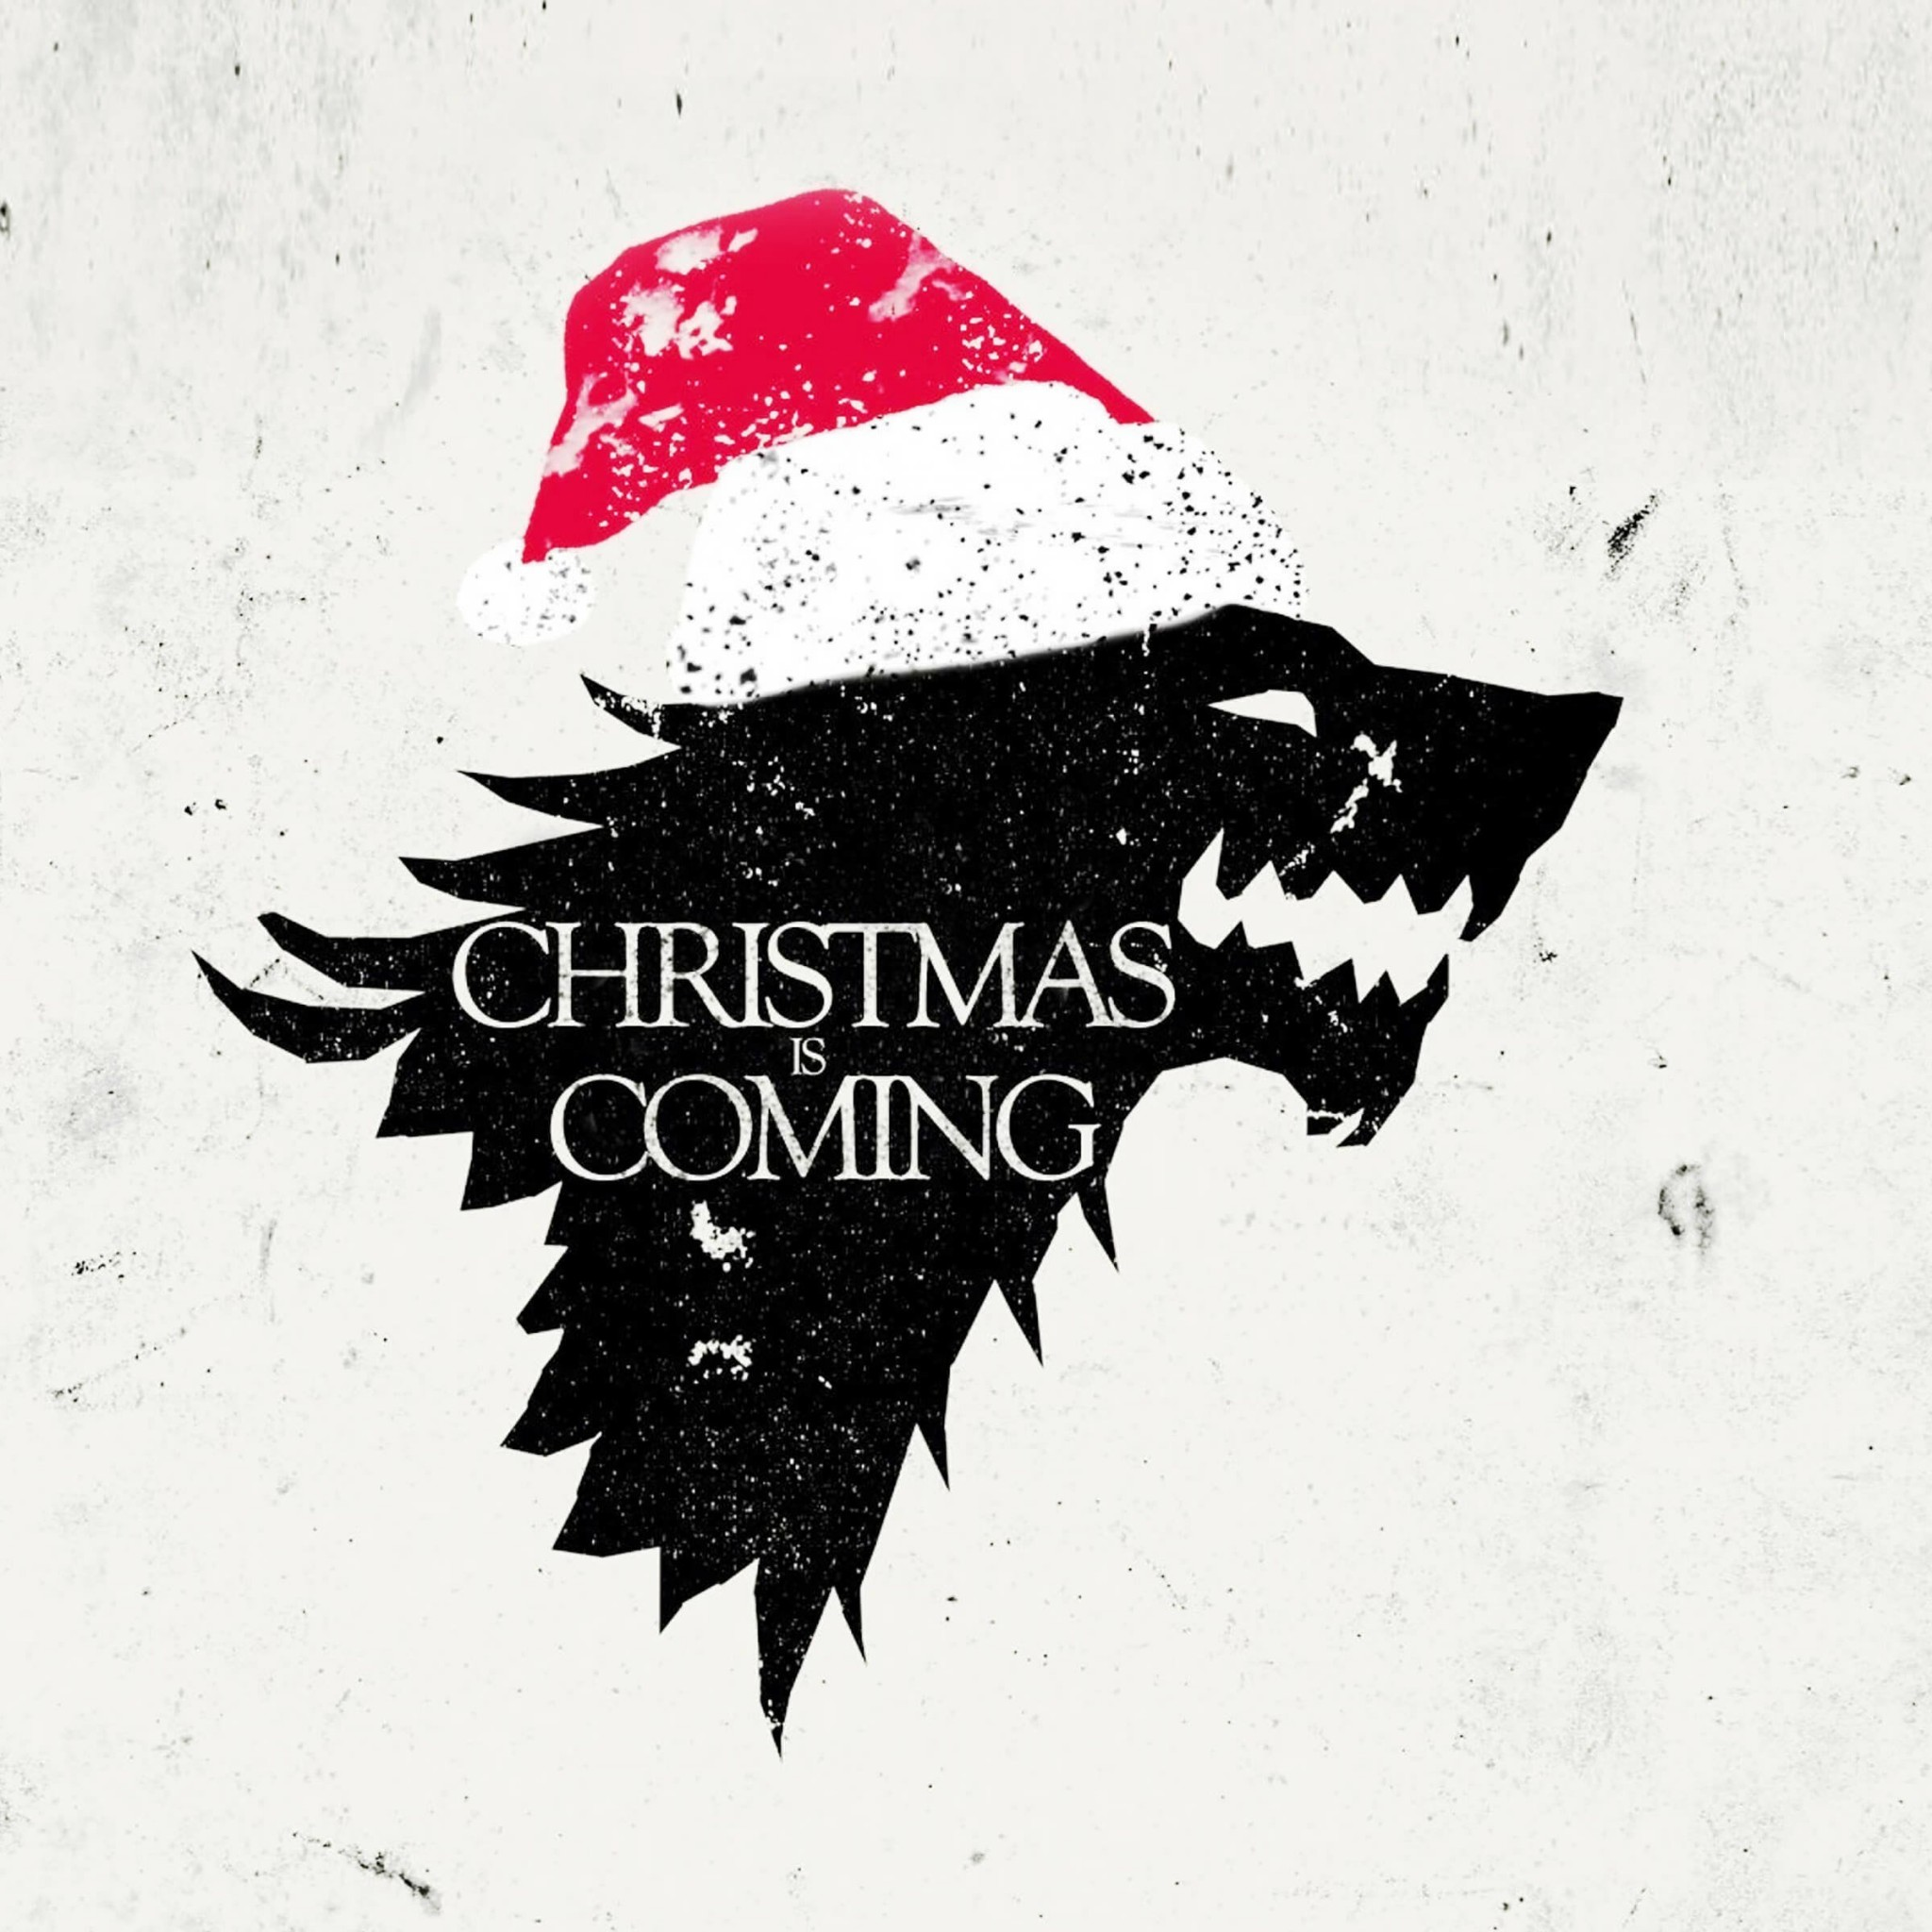 Christmas is Coming Wallpaper for Google Nexus 9